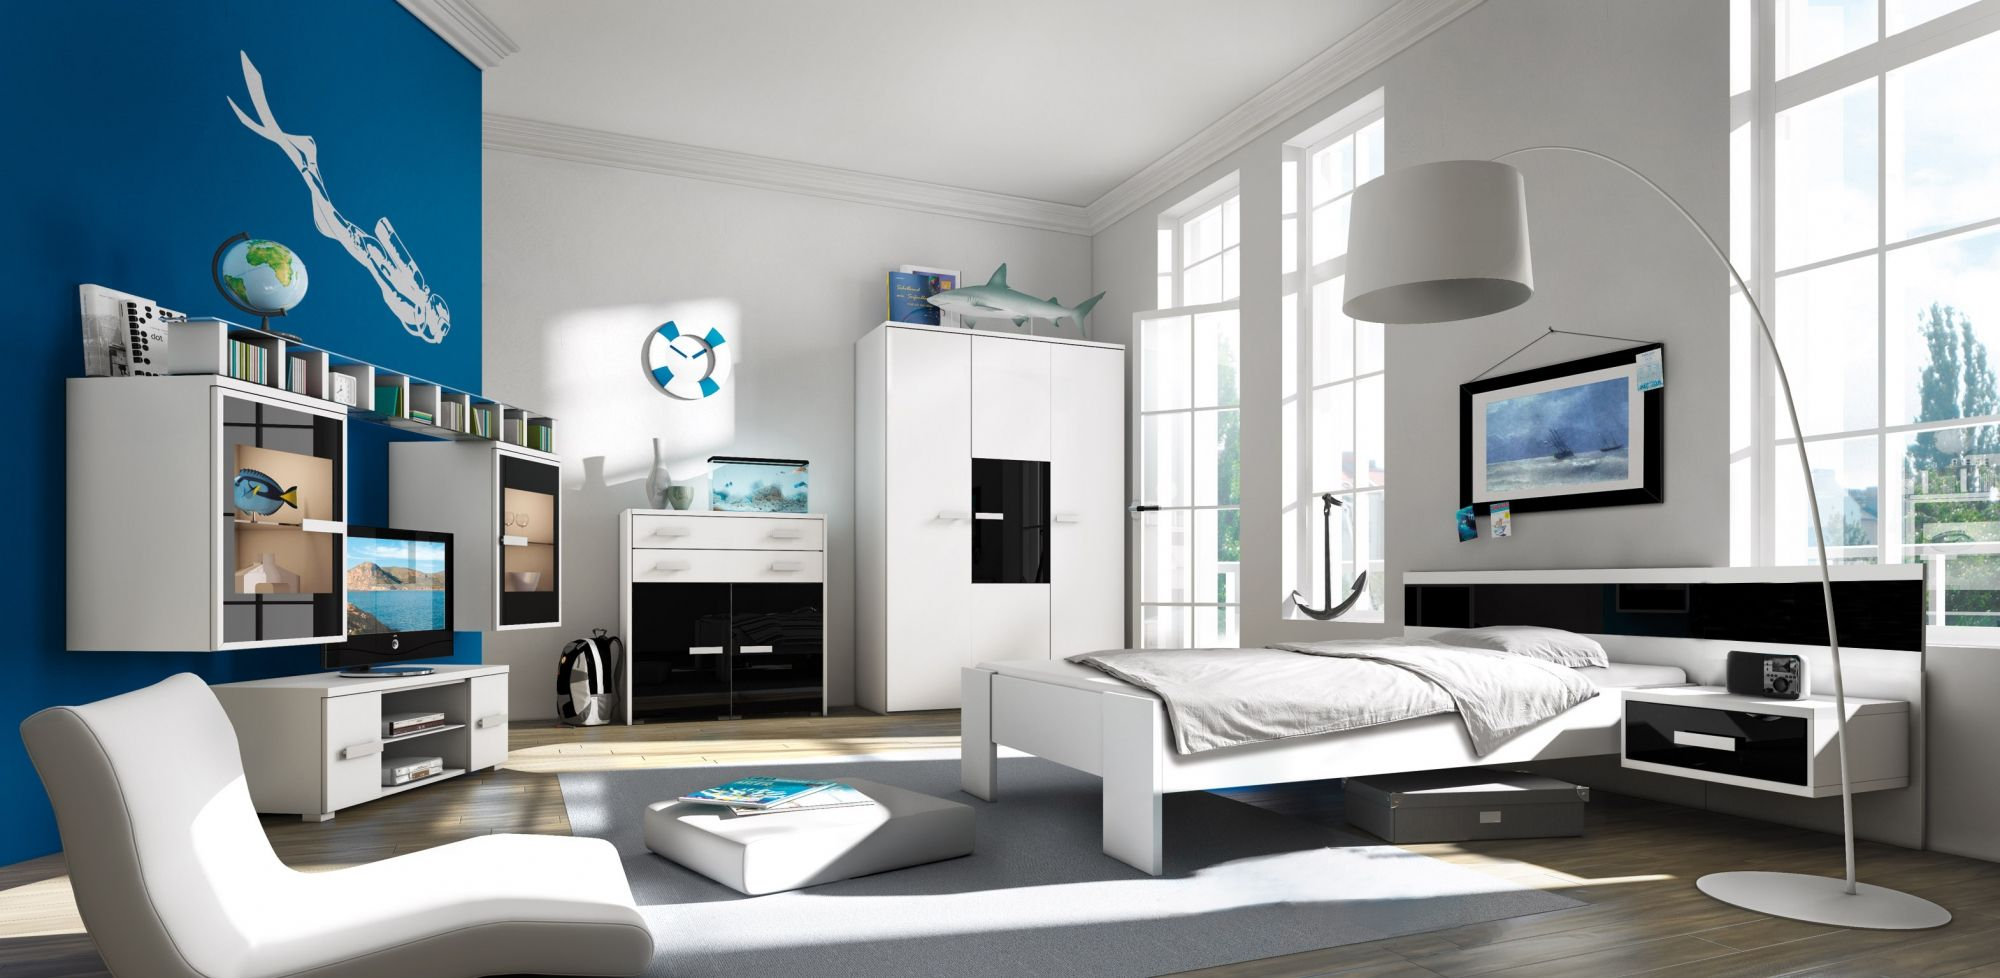 Chambre De Luxe Ado Image Search Results Avec Images